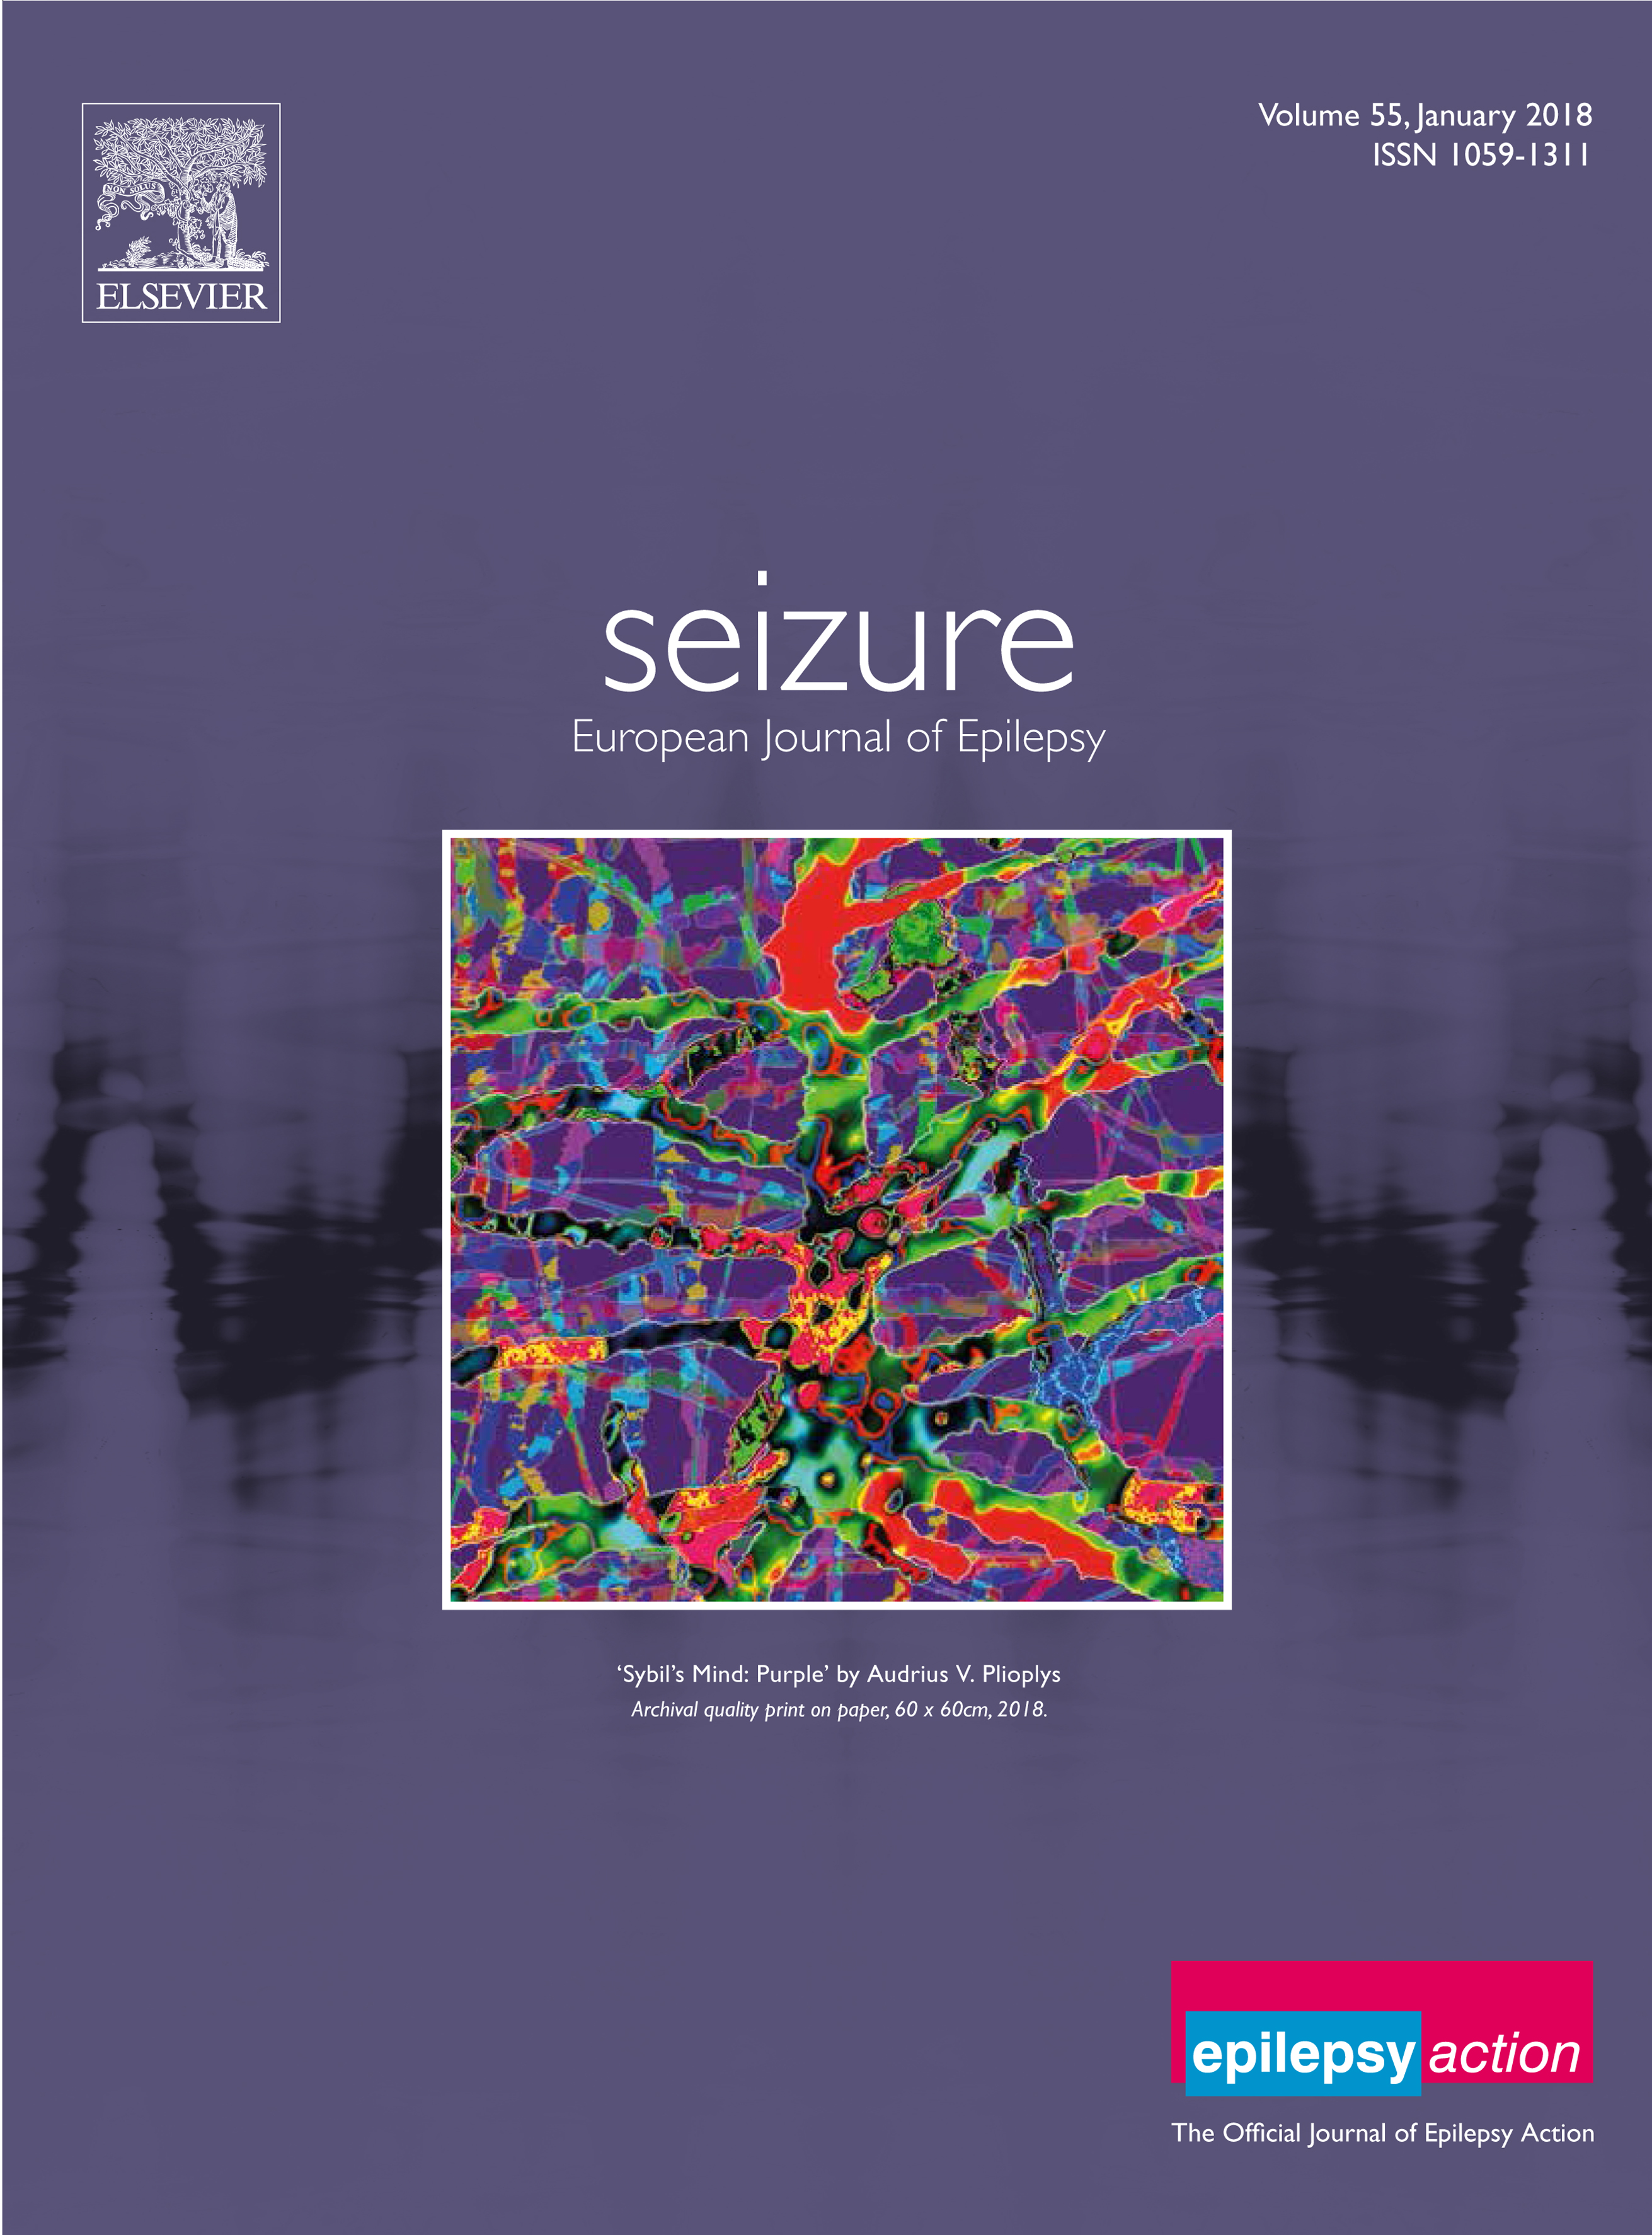 Seizure front cover 2018